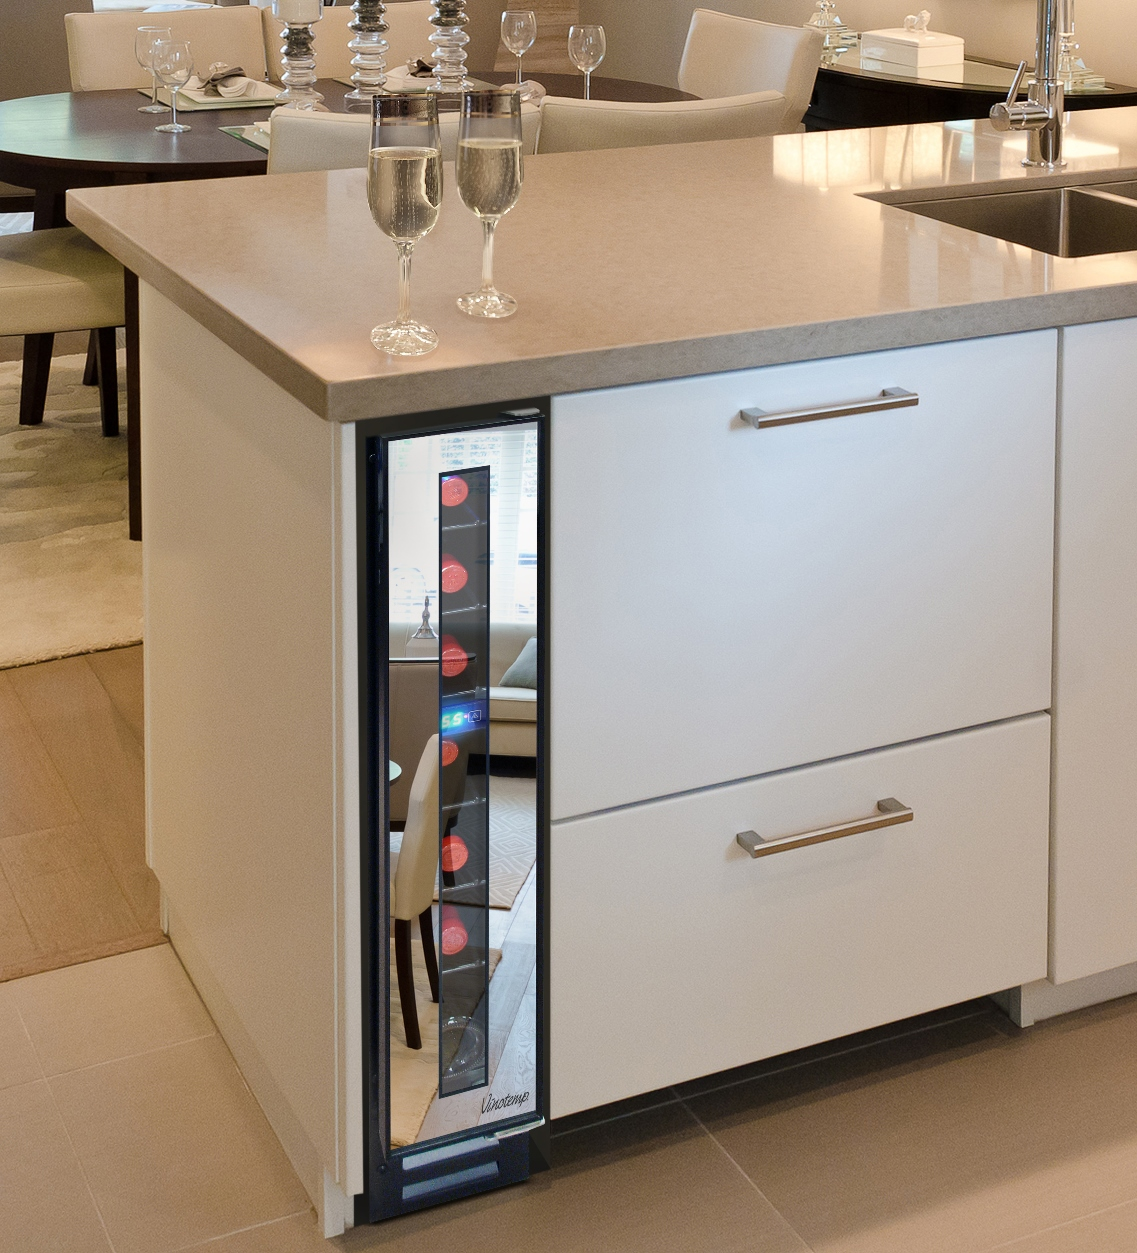 Attrayant Meredith Corporationu0027s Beautiful Kitchens U0026 Baths To Recognize Vinotempu0027s  7 Bottle Mirrored Wine Cooler As One Of Its 30 Most Innovative Products For  2016 ...